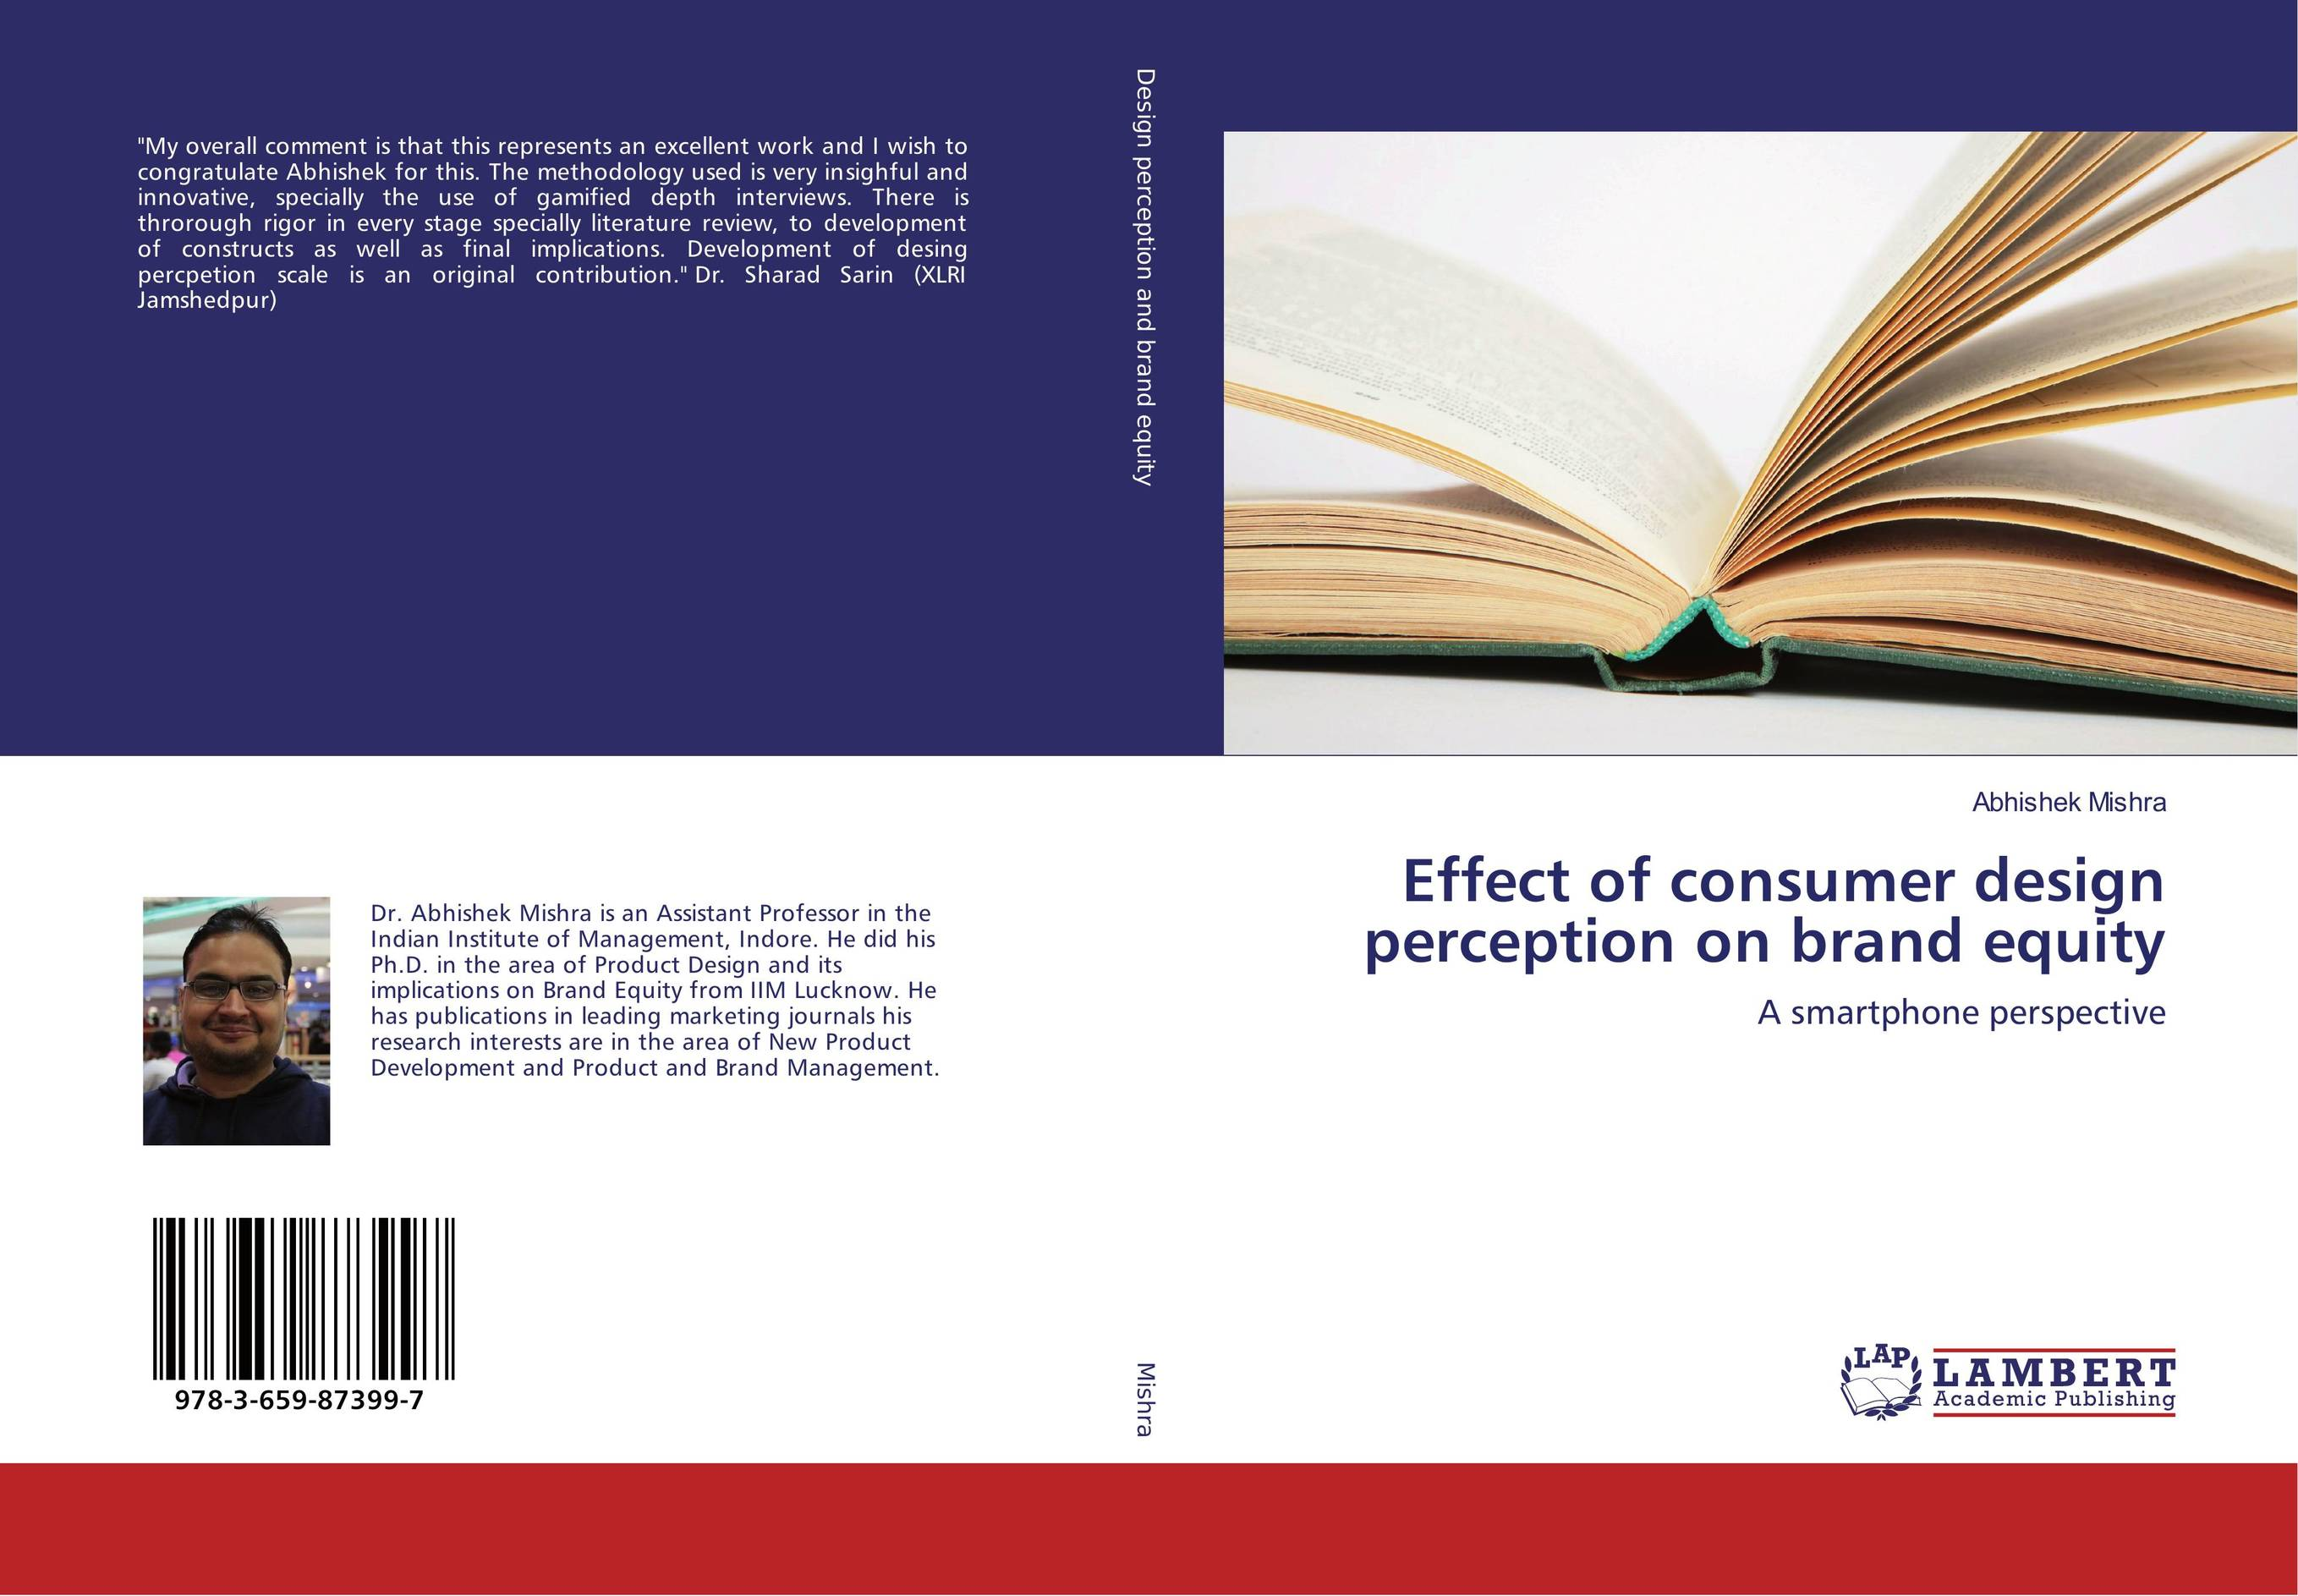 Effect of consumer design perception on brand equity